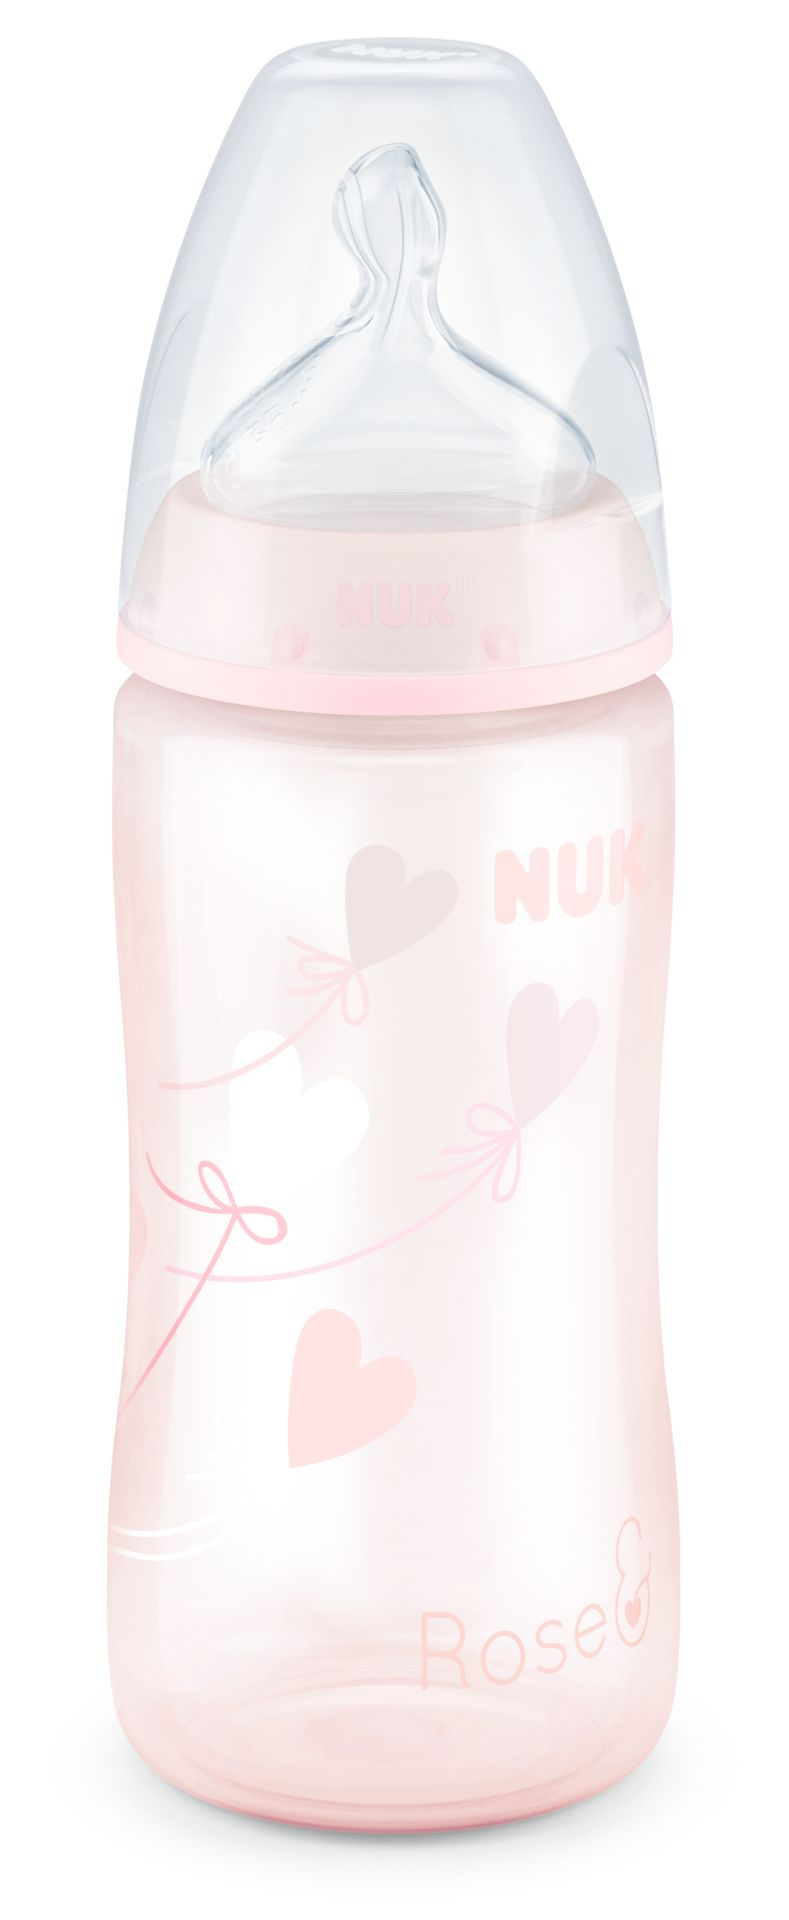 NUK First Choice Plus Starter Set with 4/ Glass Baby Bottle with teats and